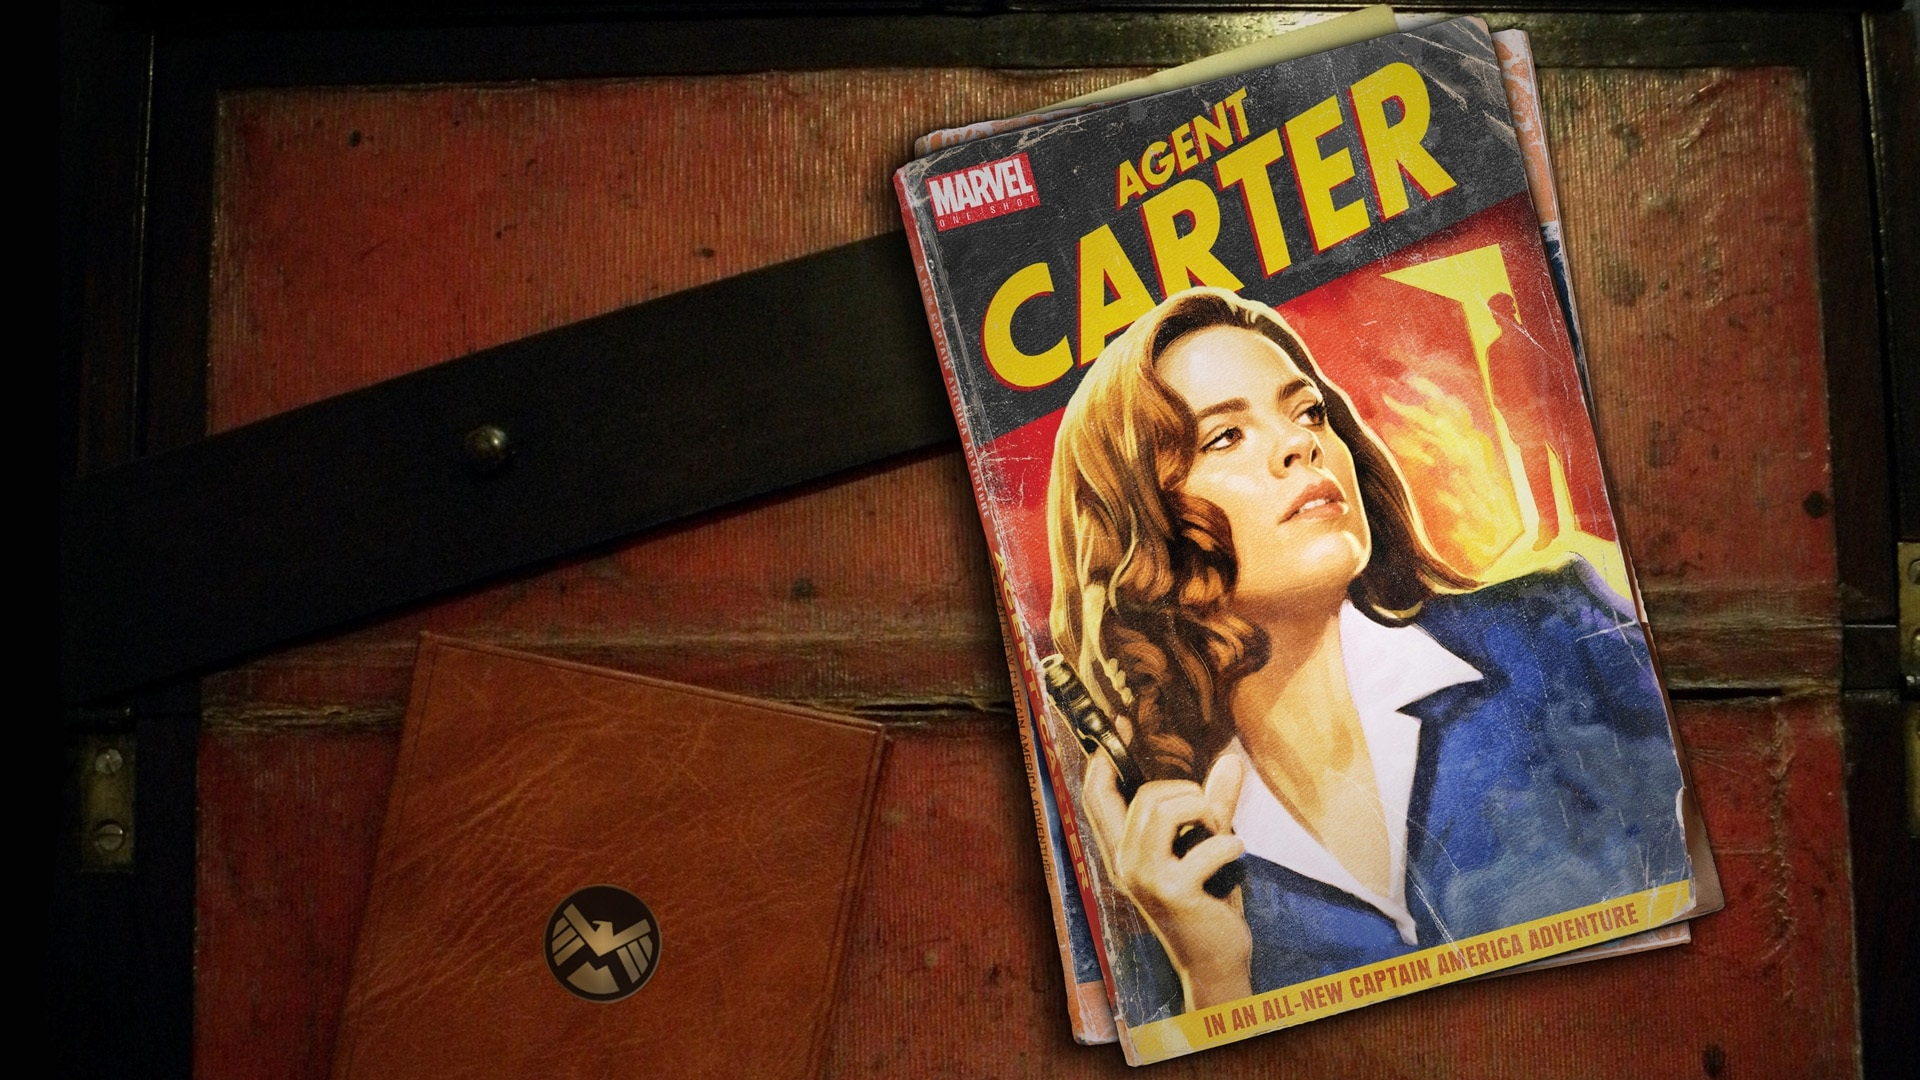 Beautiful Girl Hd Wallpapers For Mobile Download Agent Carter Hd Wallpapers 7wallpapers Net